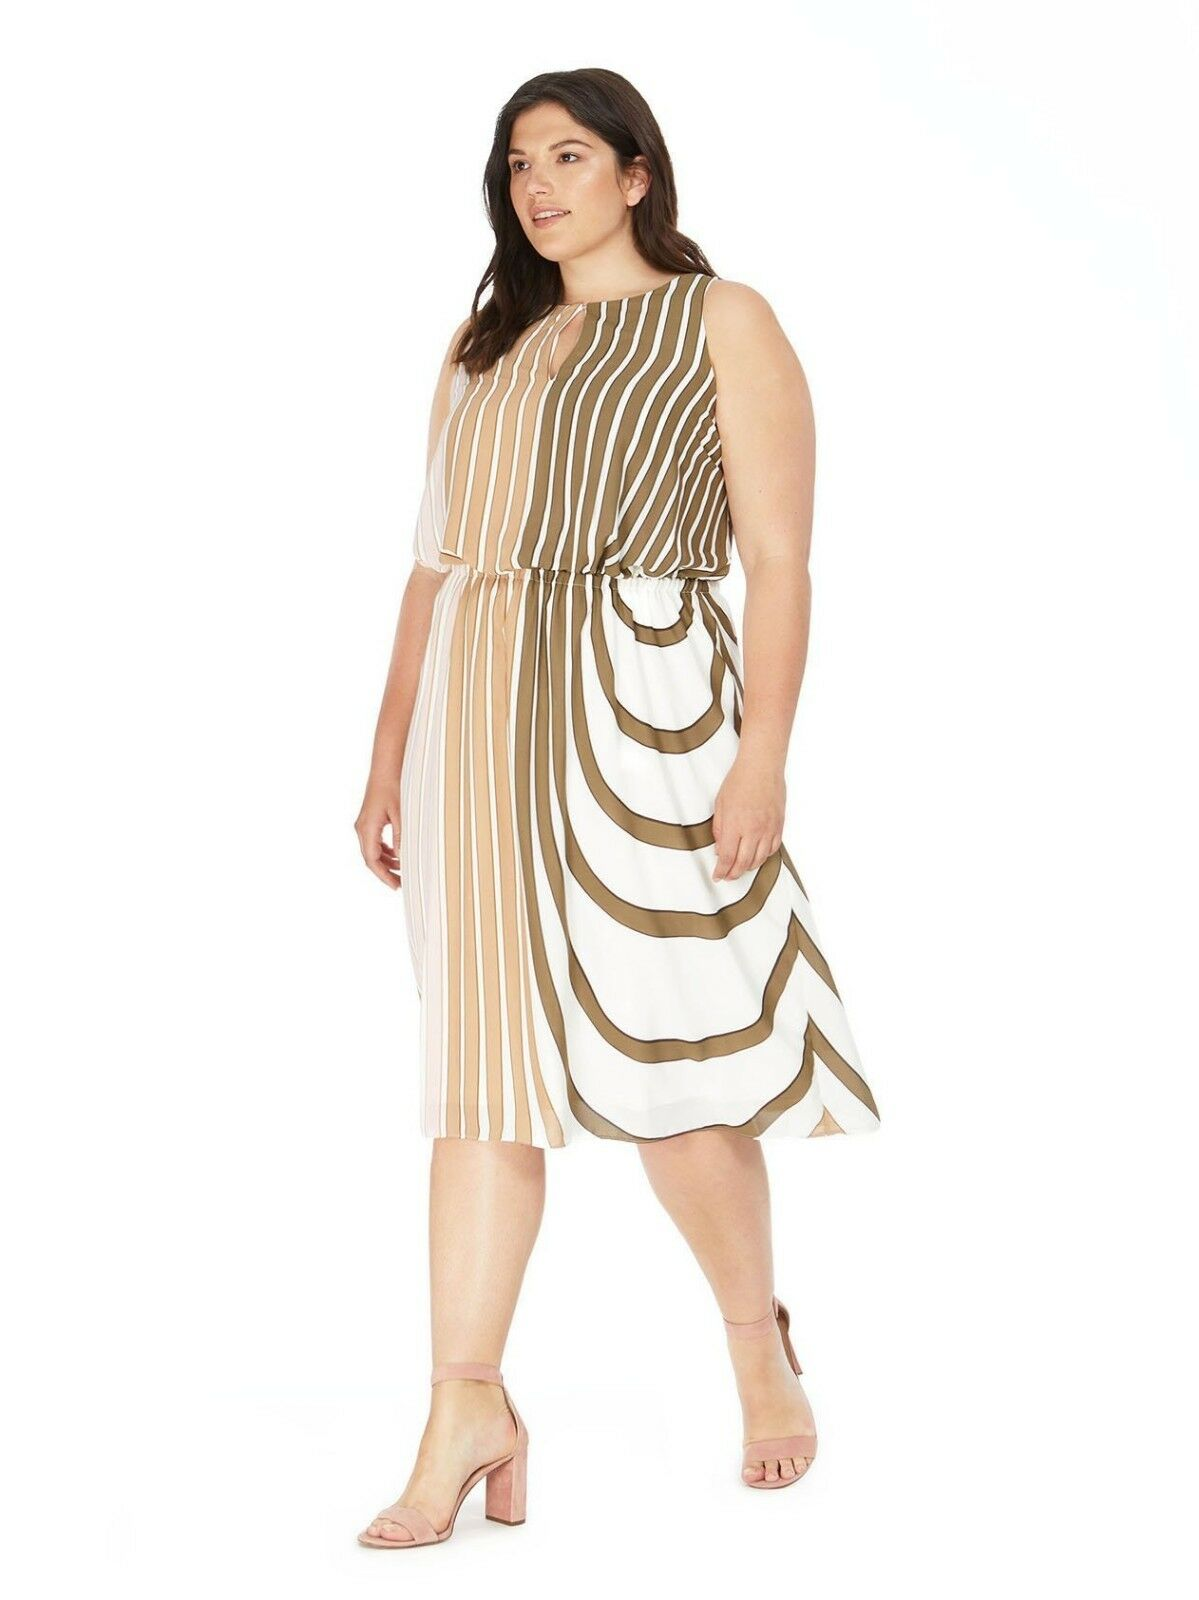 New ADRIANNA PAPELL for lane bryant striped midi dress SPRING CLASSIC   24